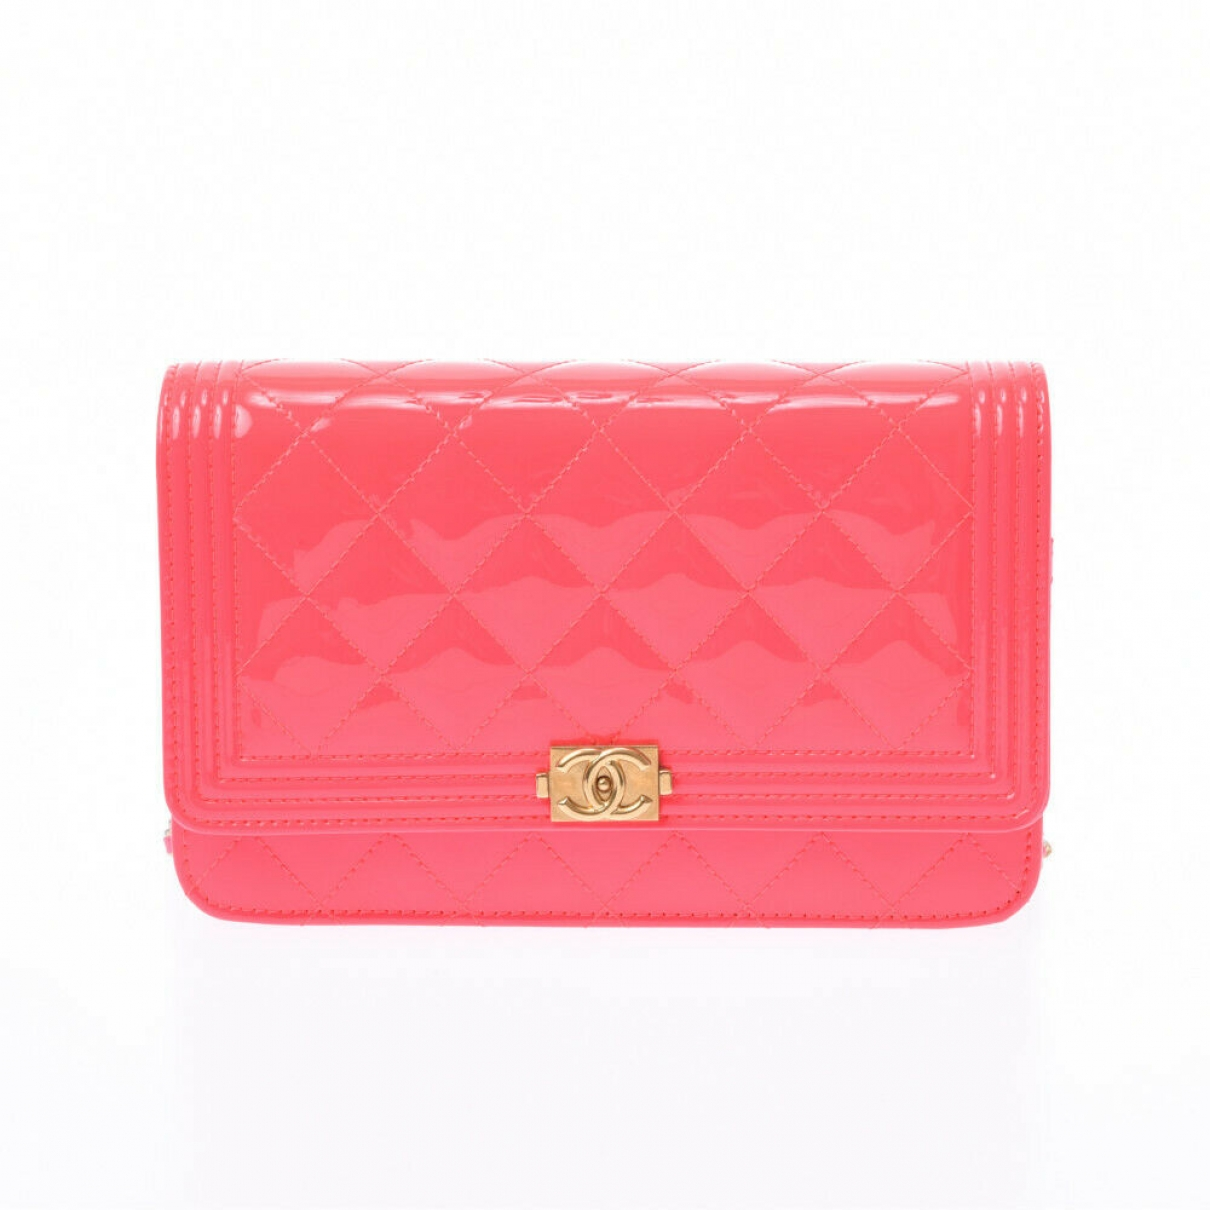 Chanel Boy Clutch in  Rosa Lackleder